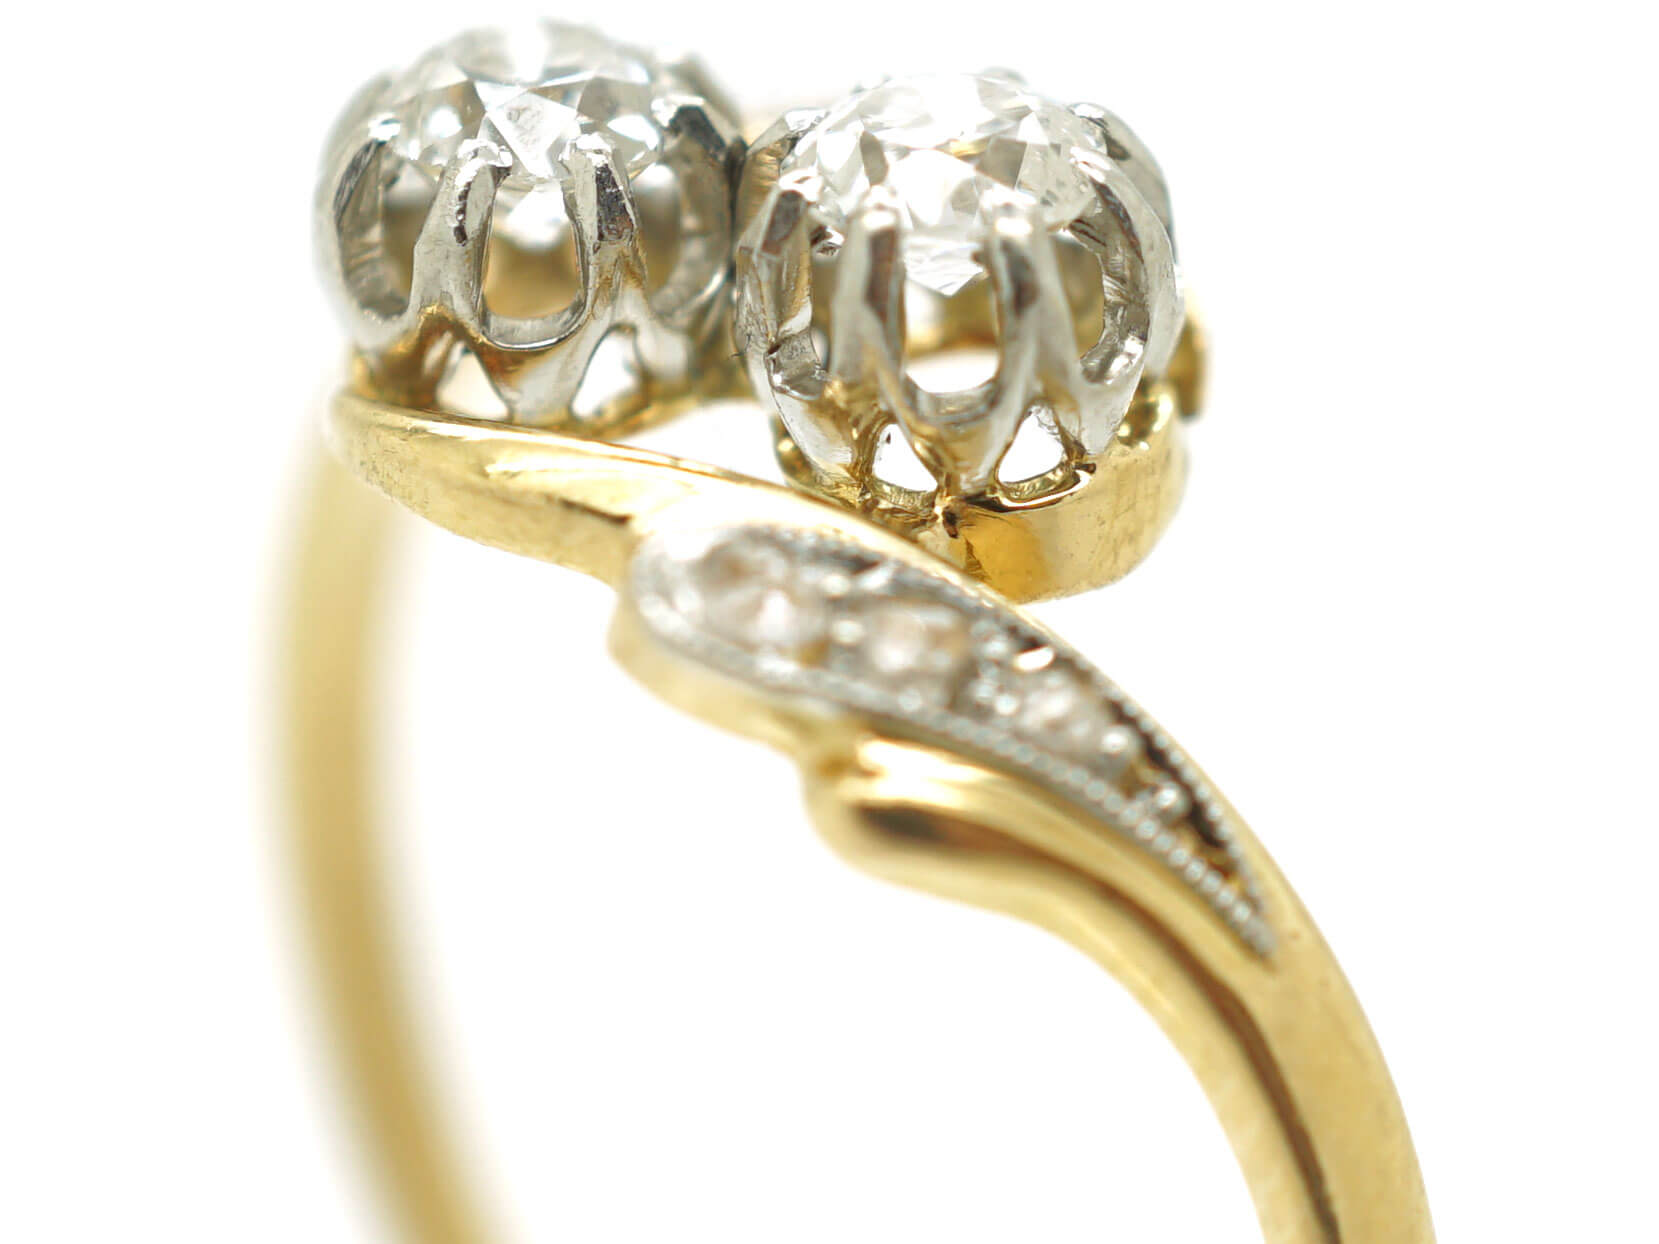 French 18ct Gold Two Stone Diamond Twist Ring with Diamond Set Shoulders